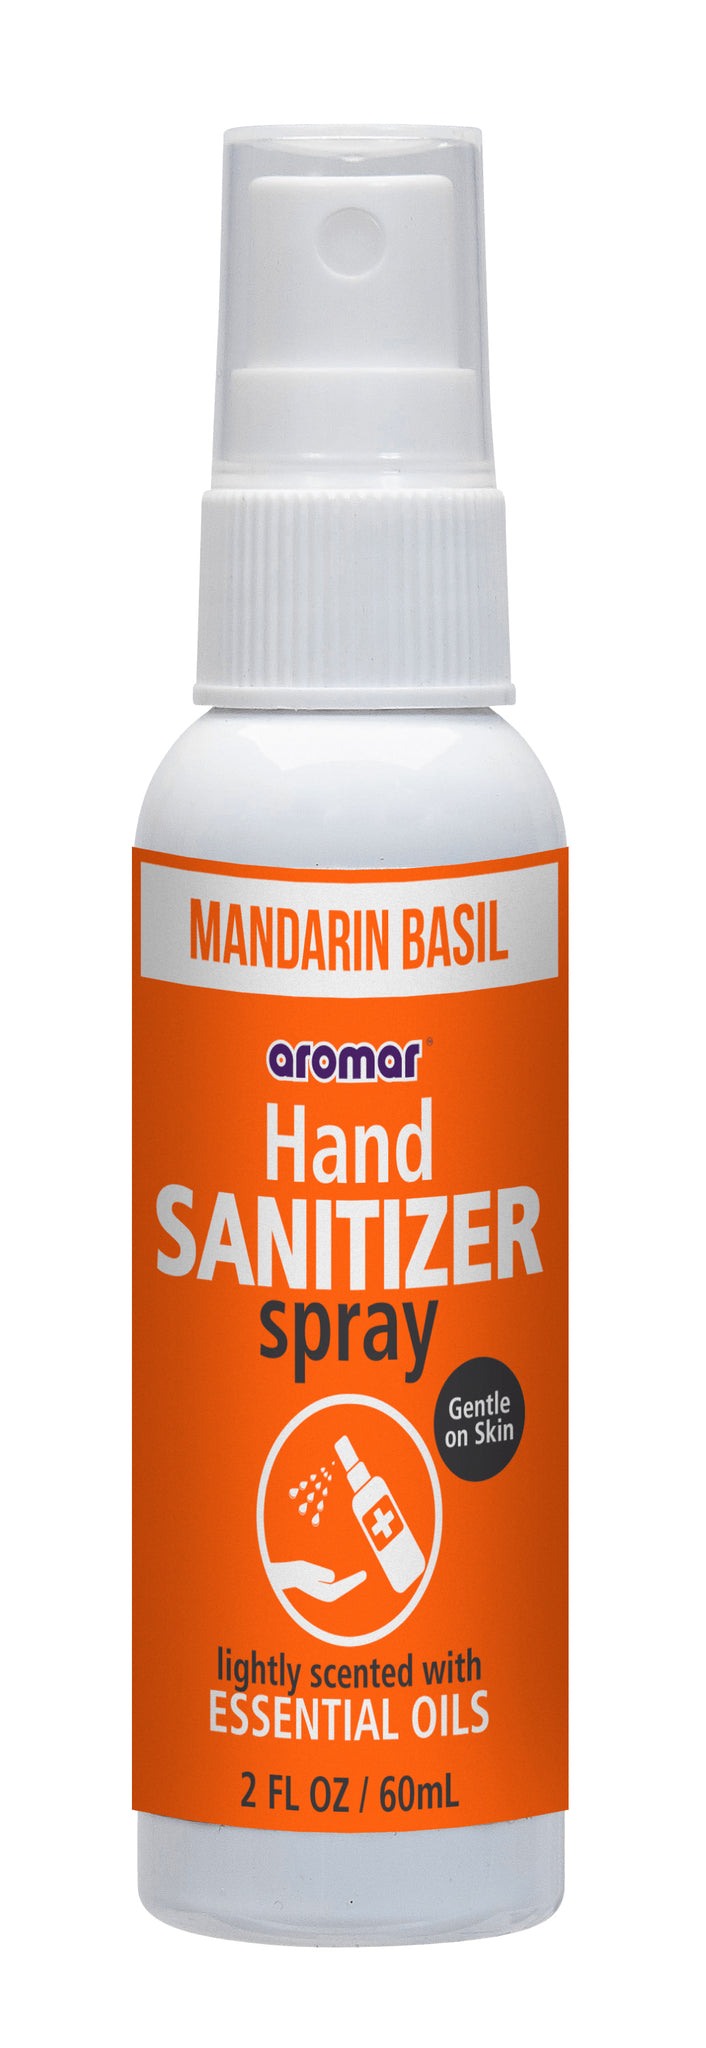 Aromar Mandarin Basil Hand Sanitizer Sprays 2 oz Bottle